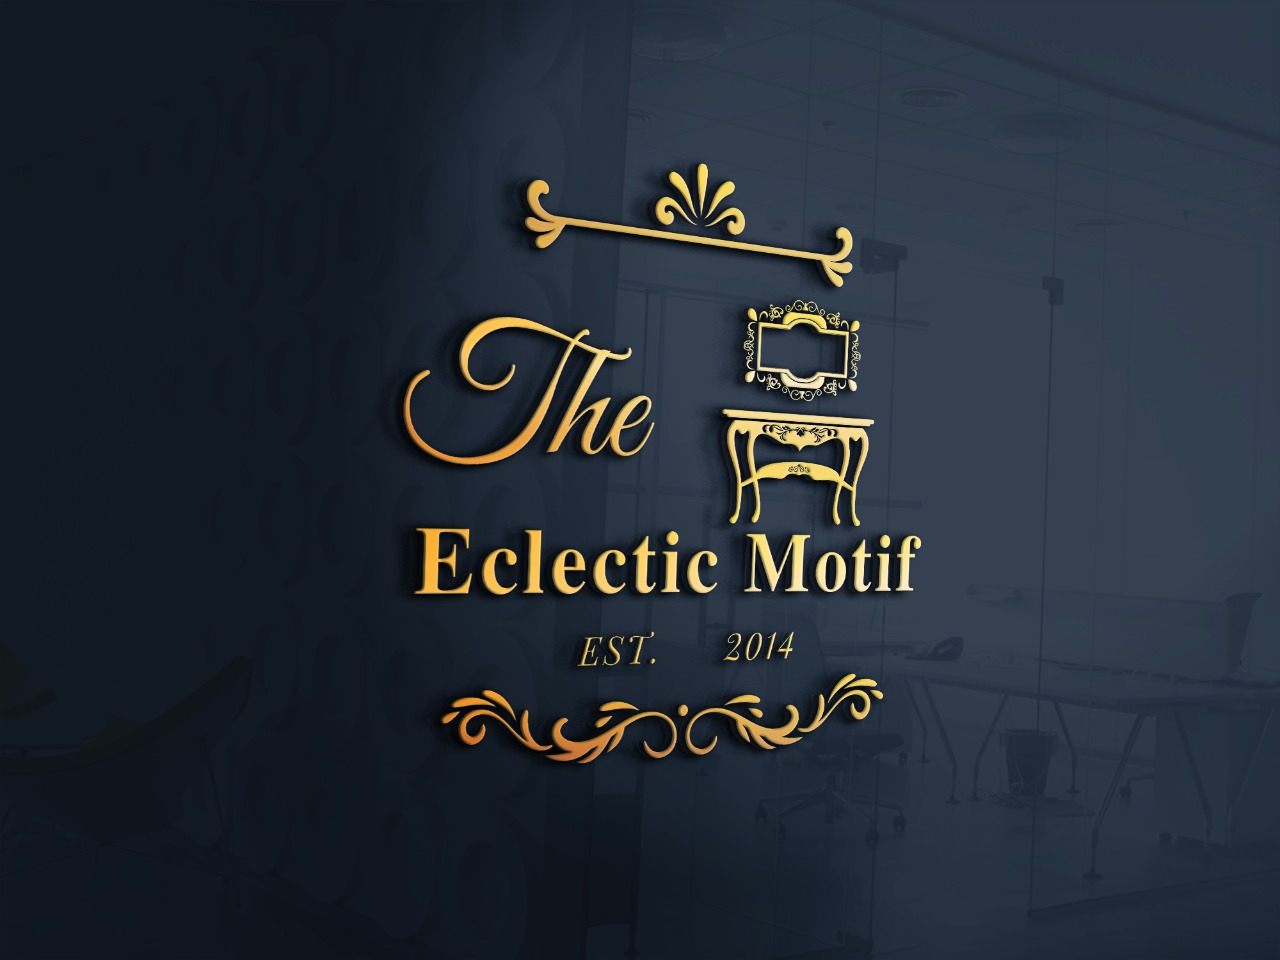 The Eclectic Motif